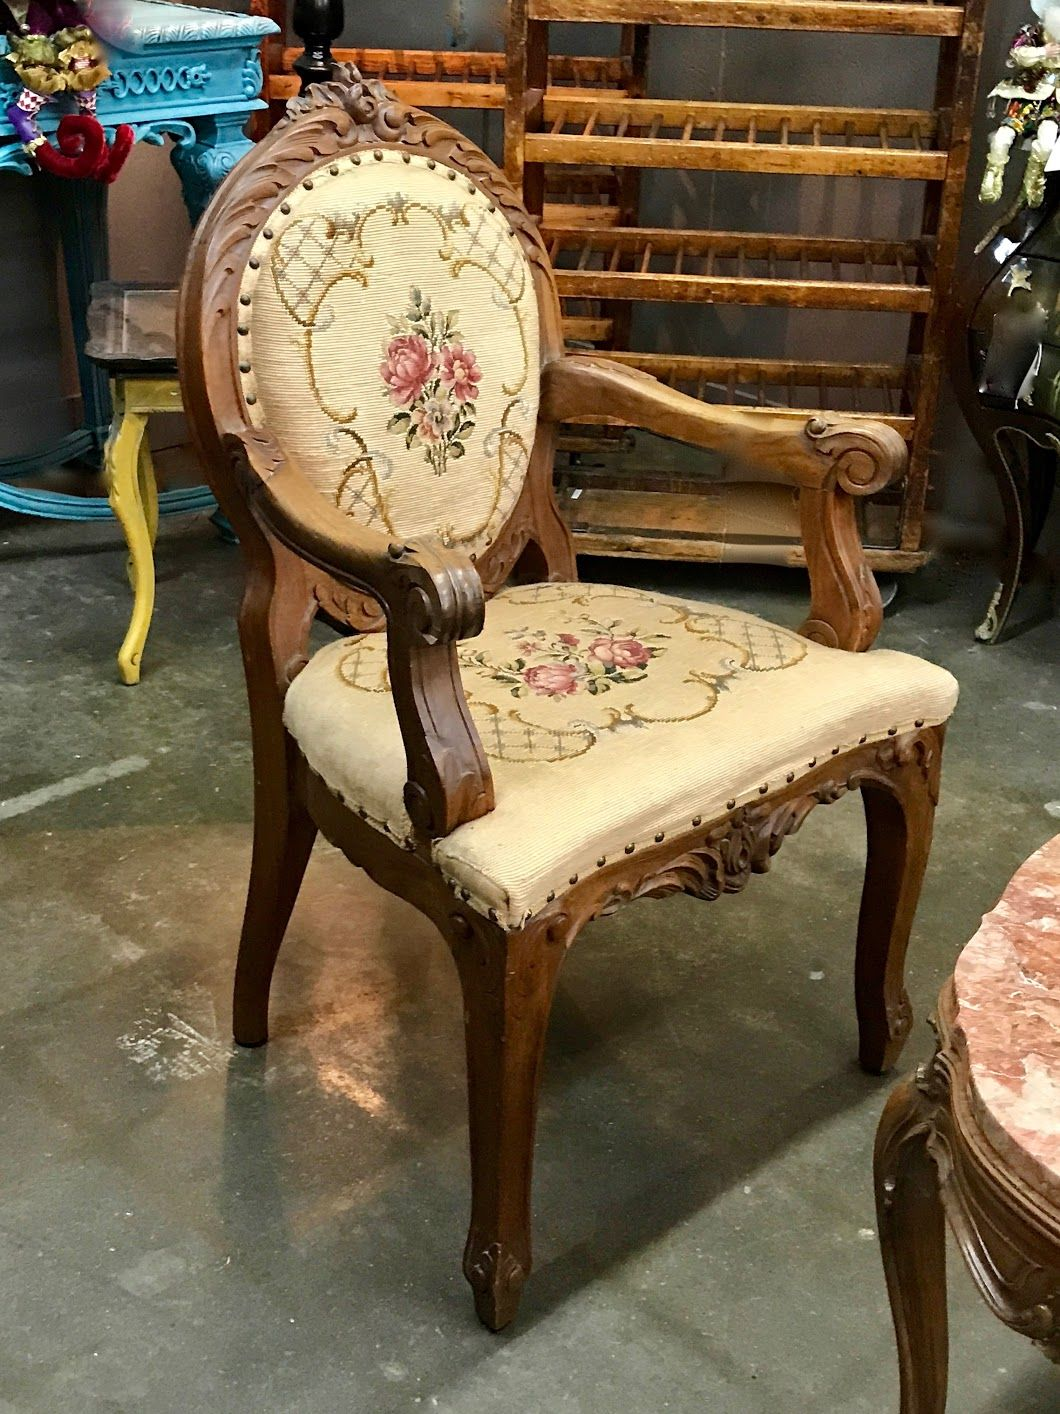 French Antique Needlepoint Horse Hair Armchair On Sale Was $399 Sale Price  $319 My Treasured Antiques - French Antique Needlepoint Horse Hair Armchair On Sale Was $399 Sale